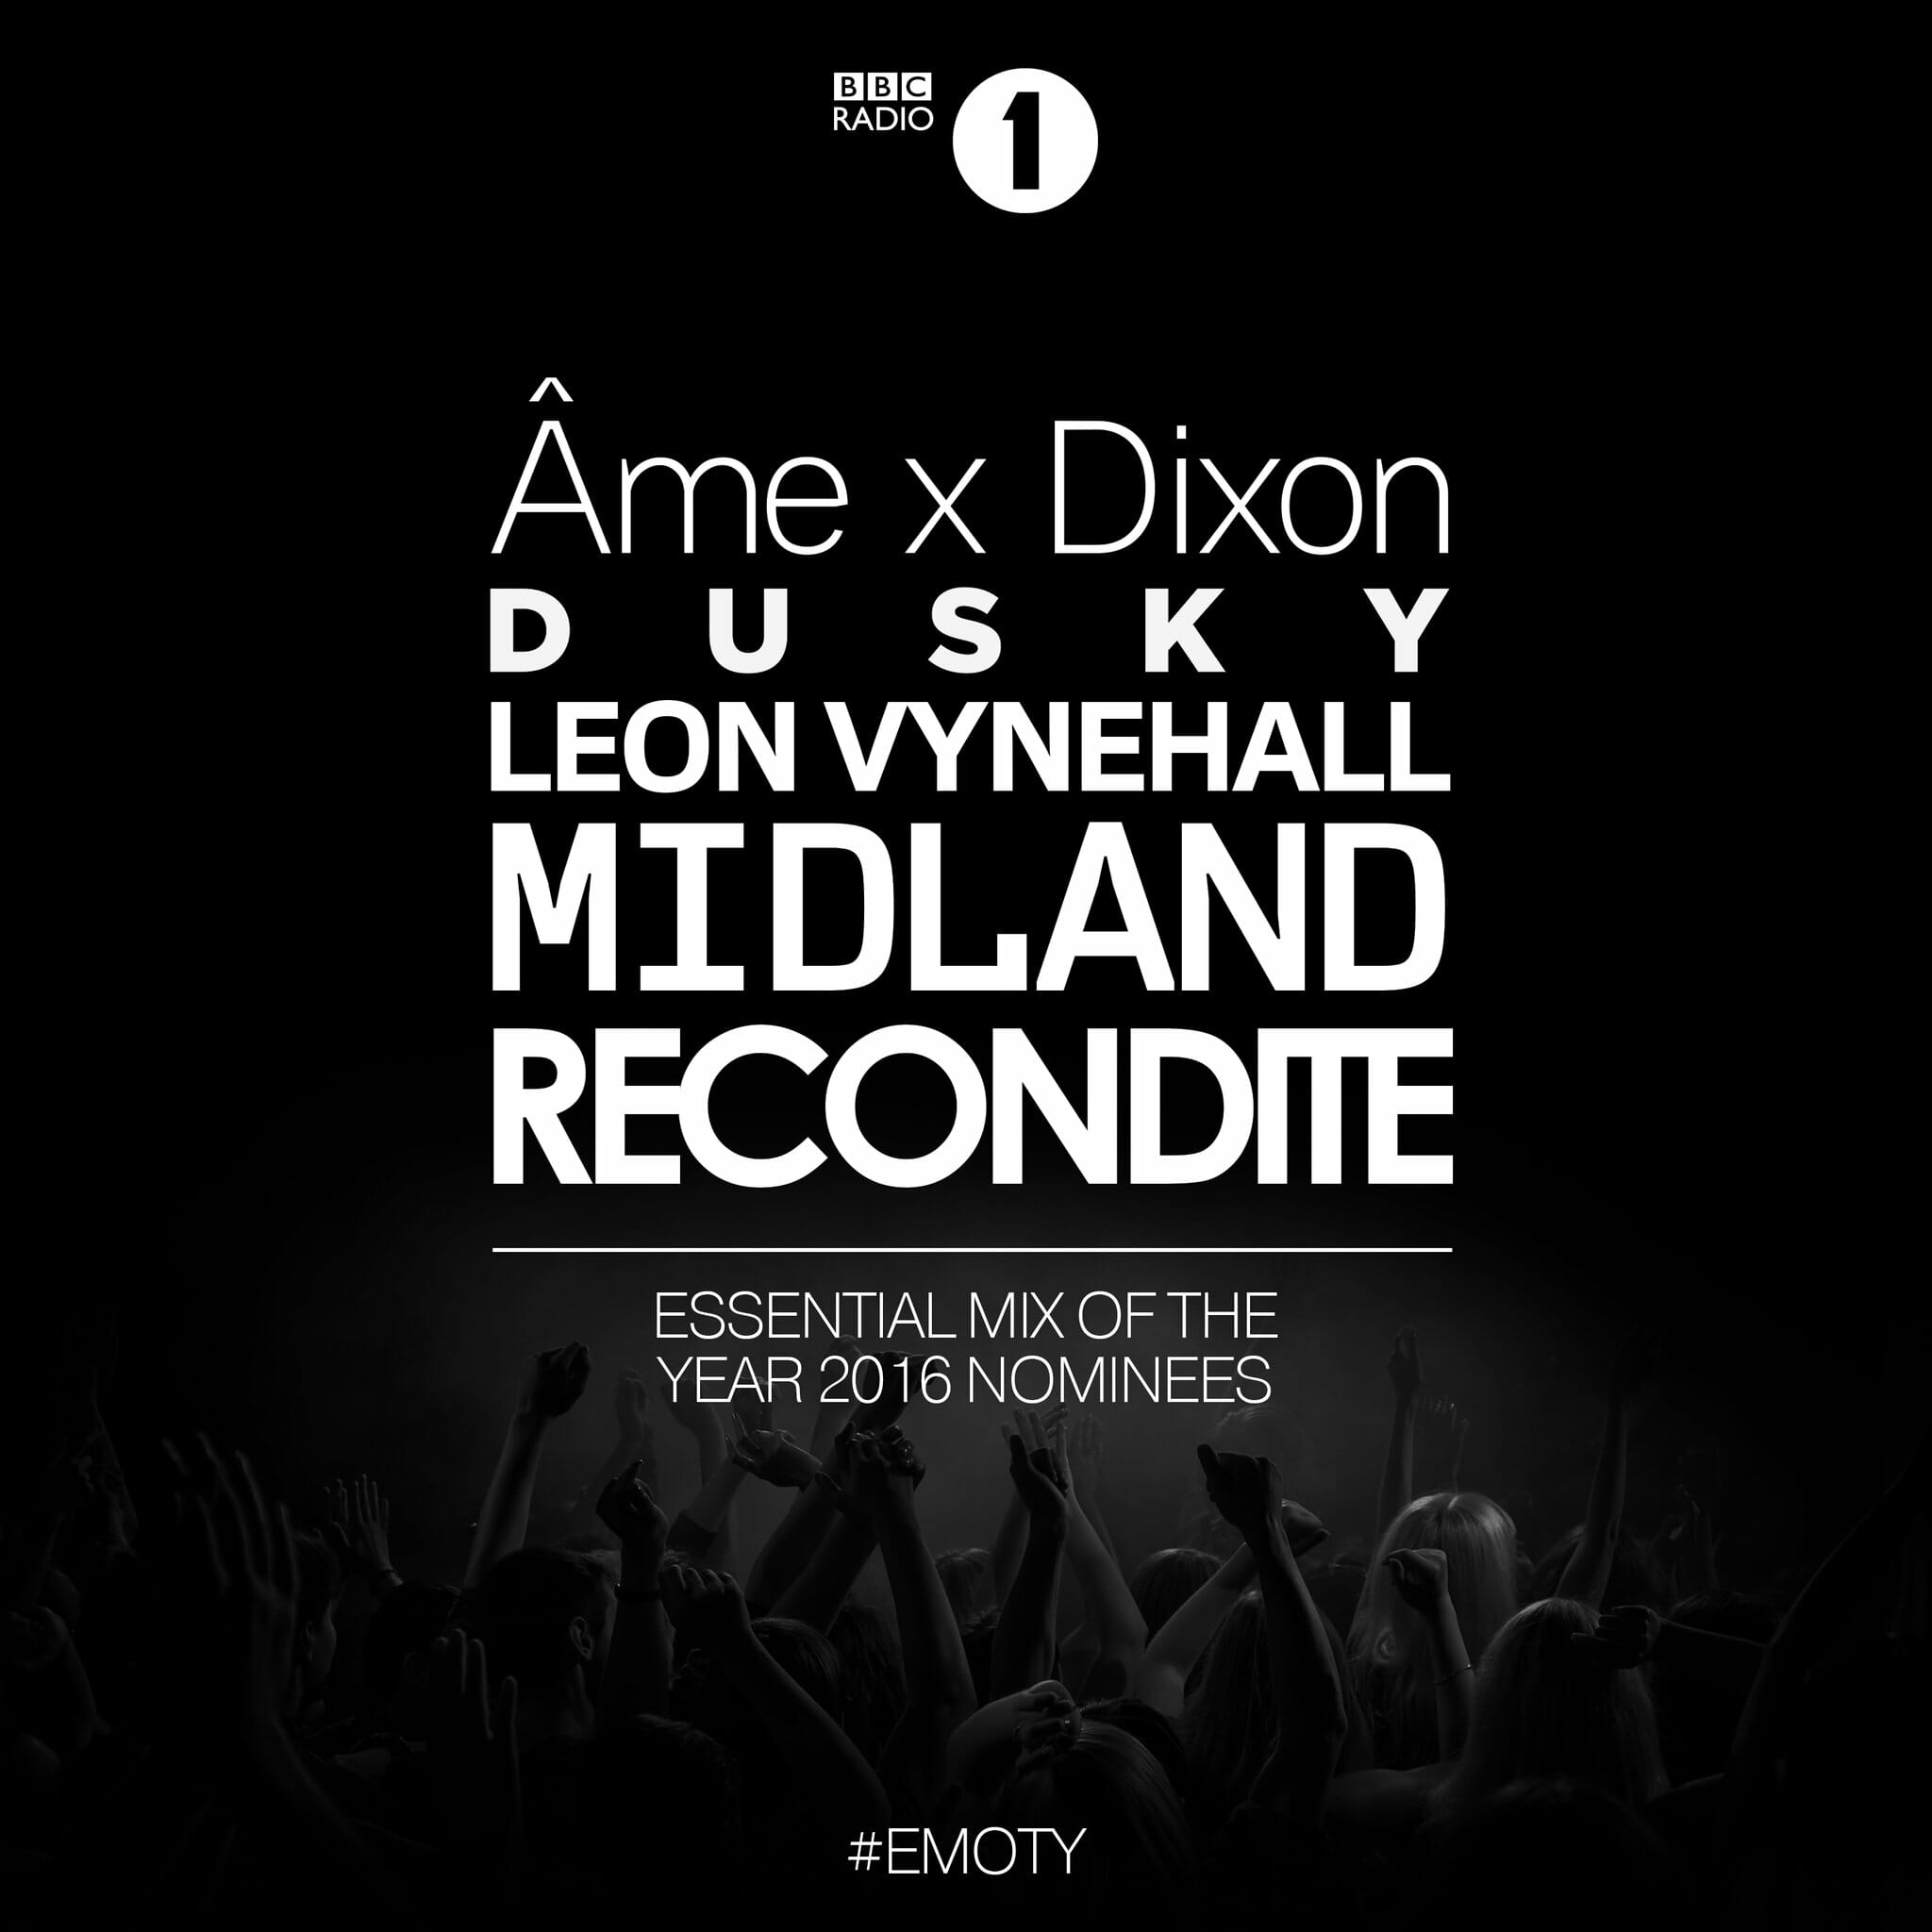 Listen to BBC Radio 1's nominations for 2016's Essential Mix of the YearEssential Mi Of The Year 2016 Nominees